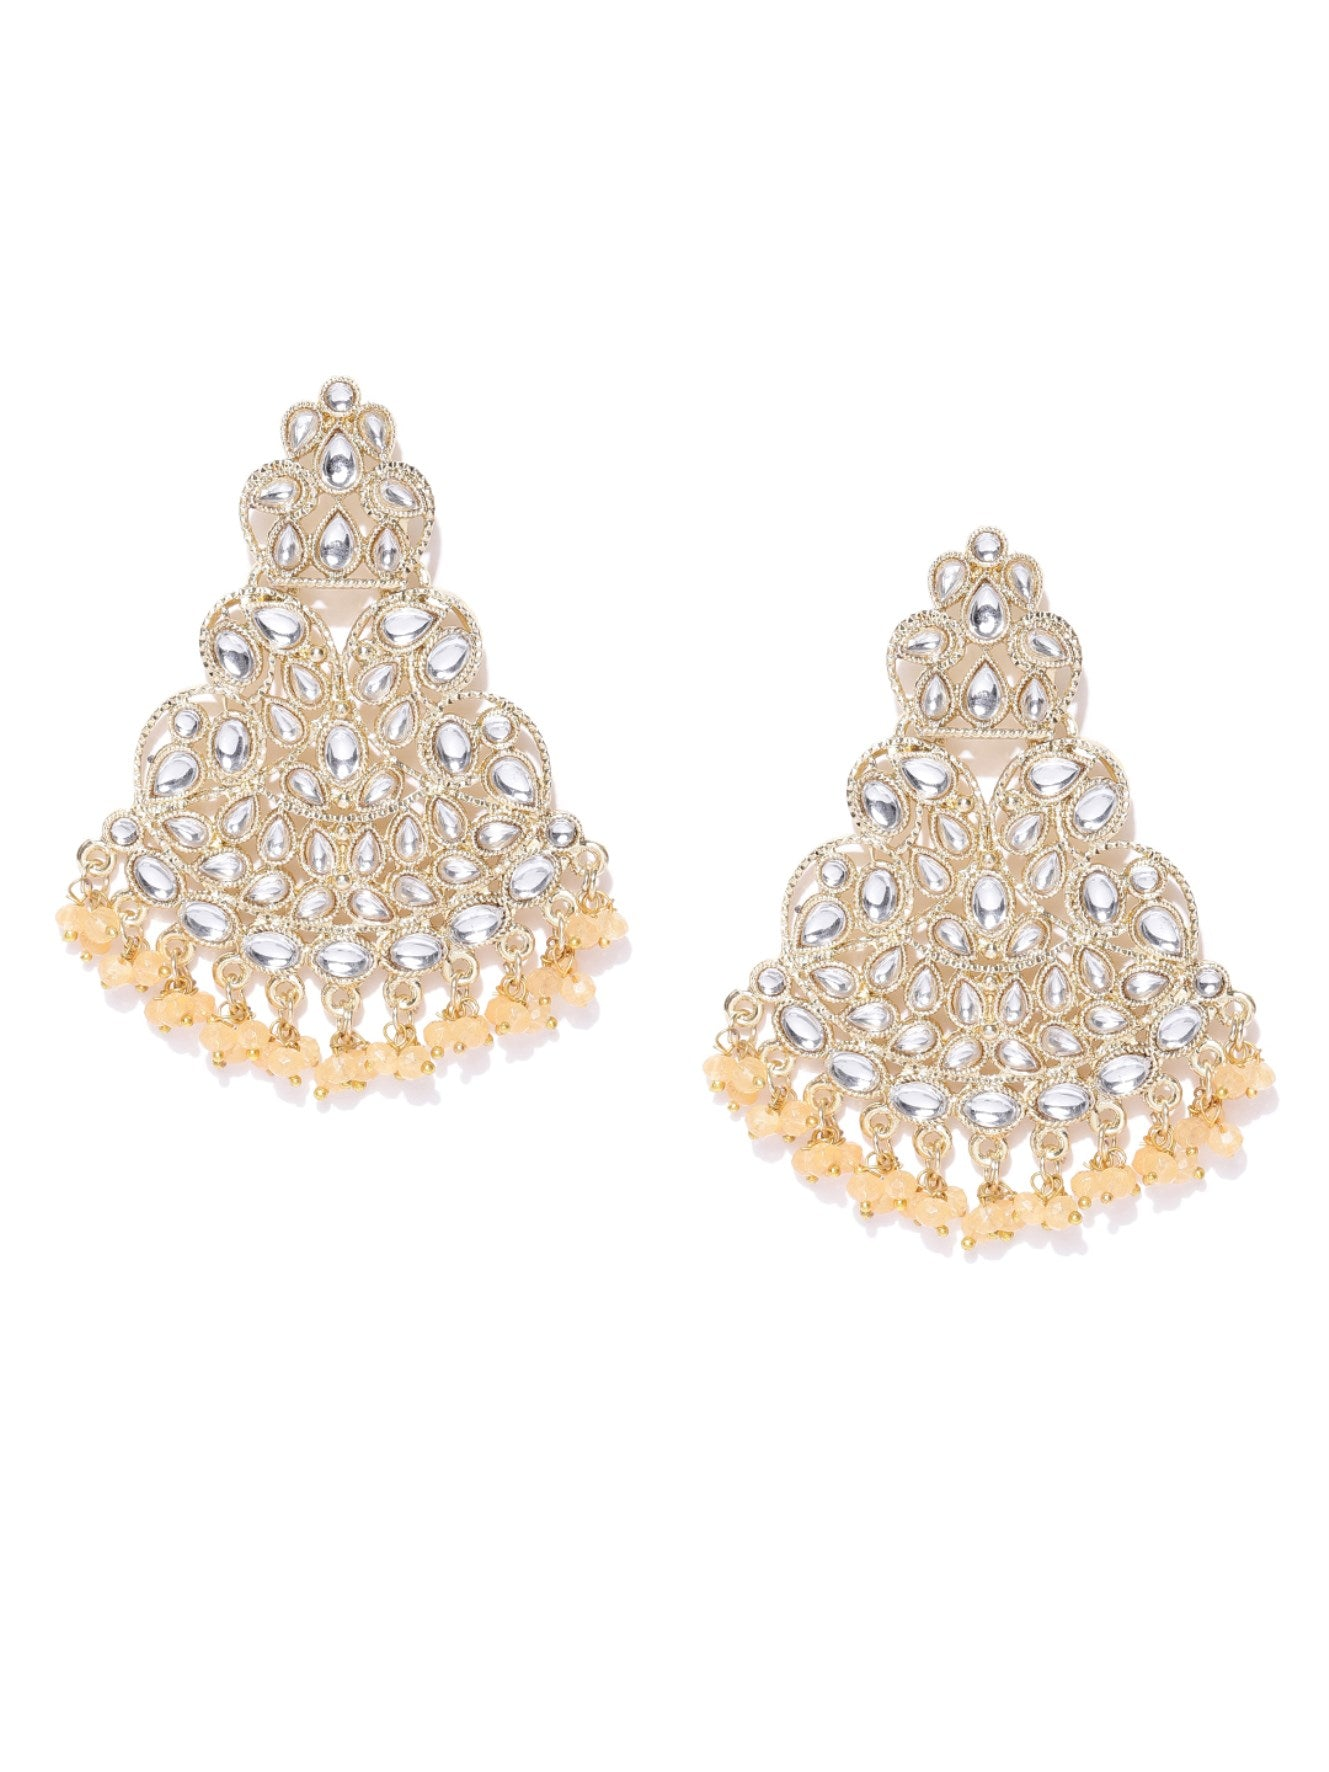 Designer Gold Plated Kundan Earrings With Peach Beads For Women And Girls